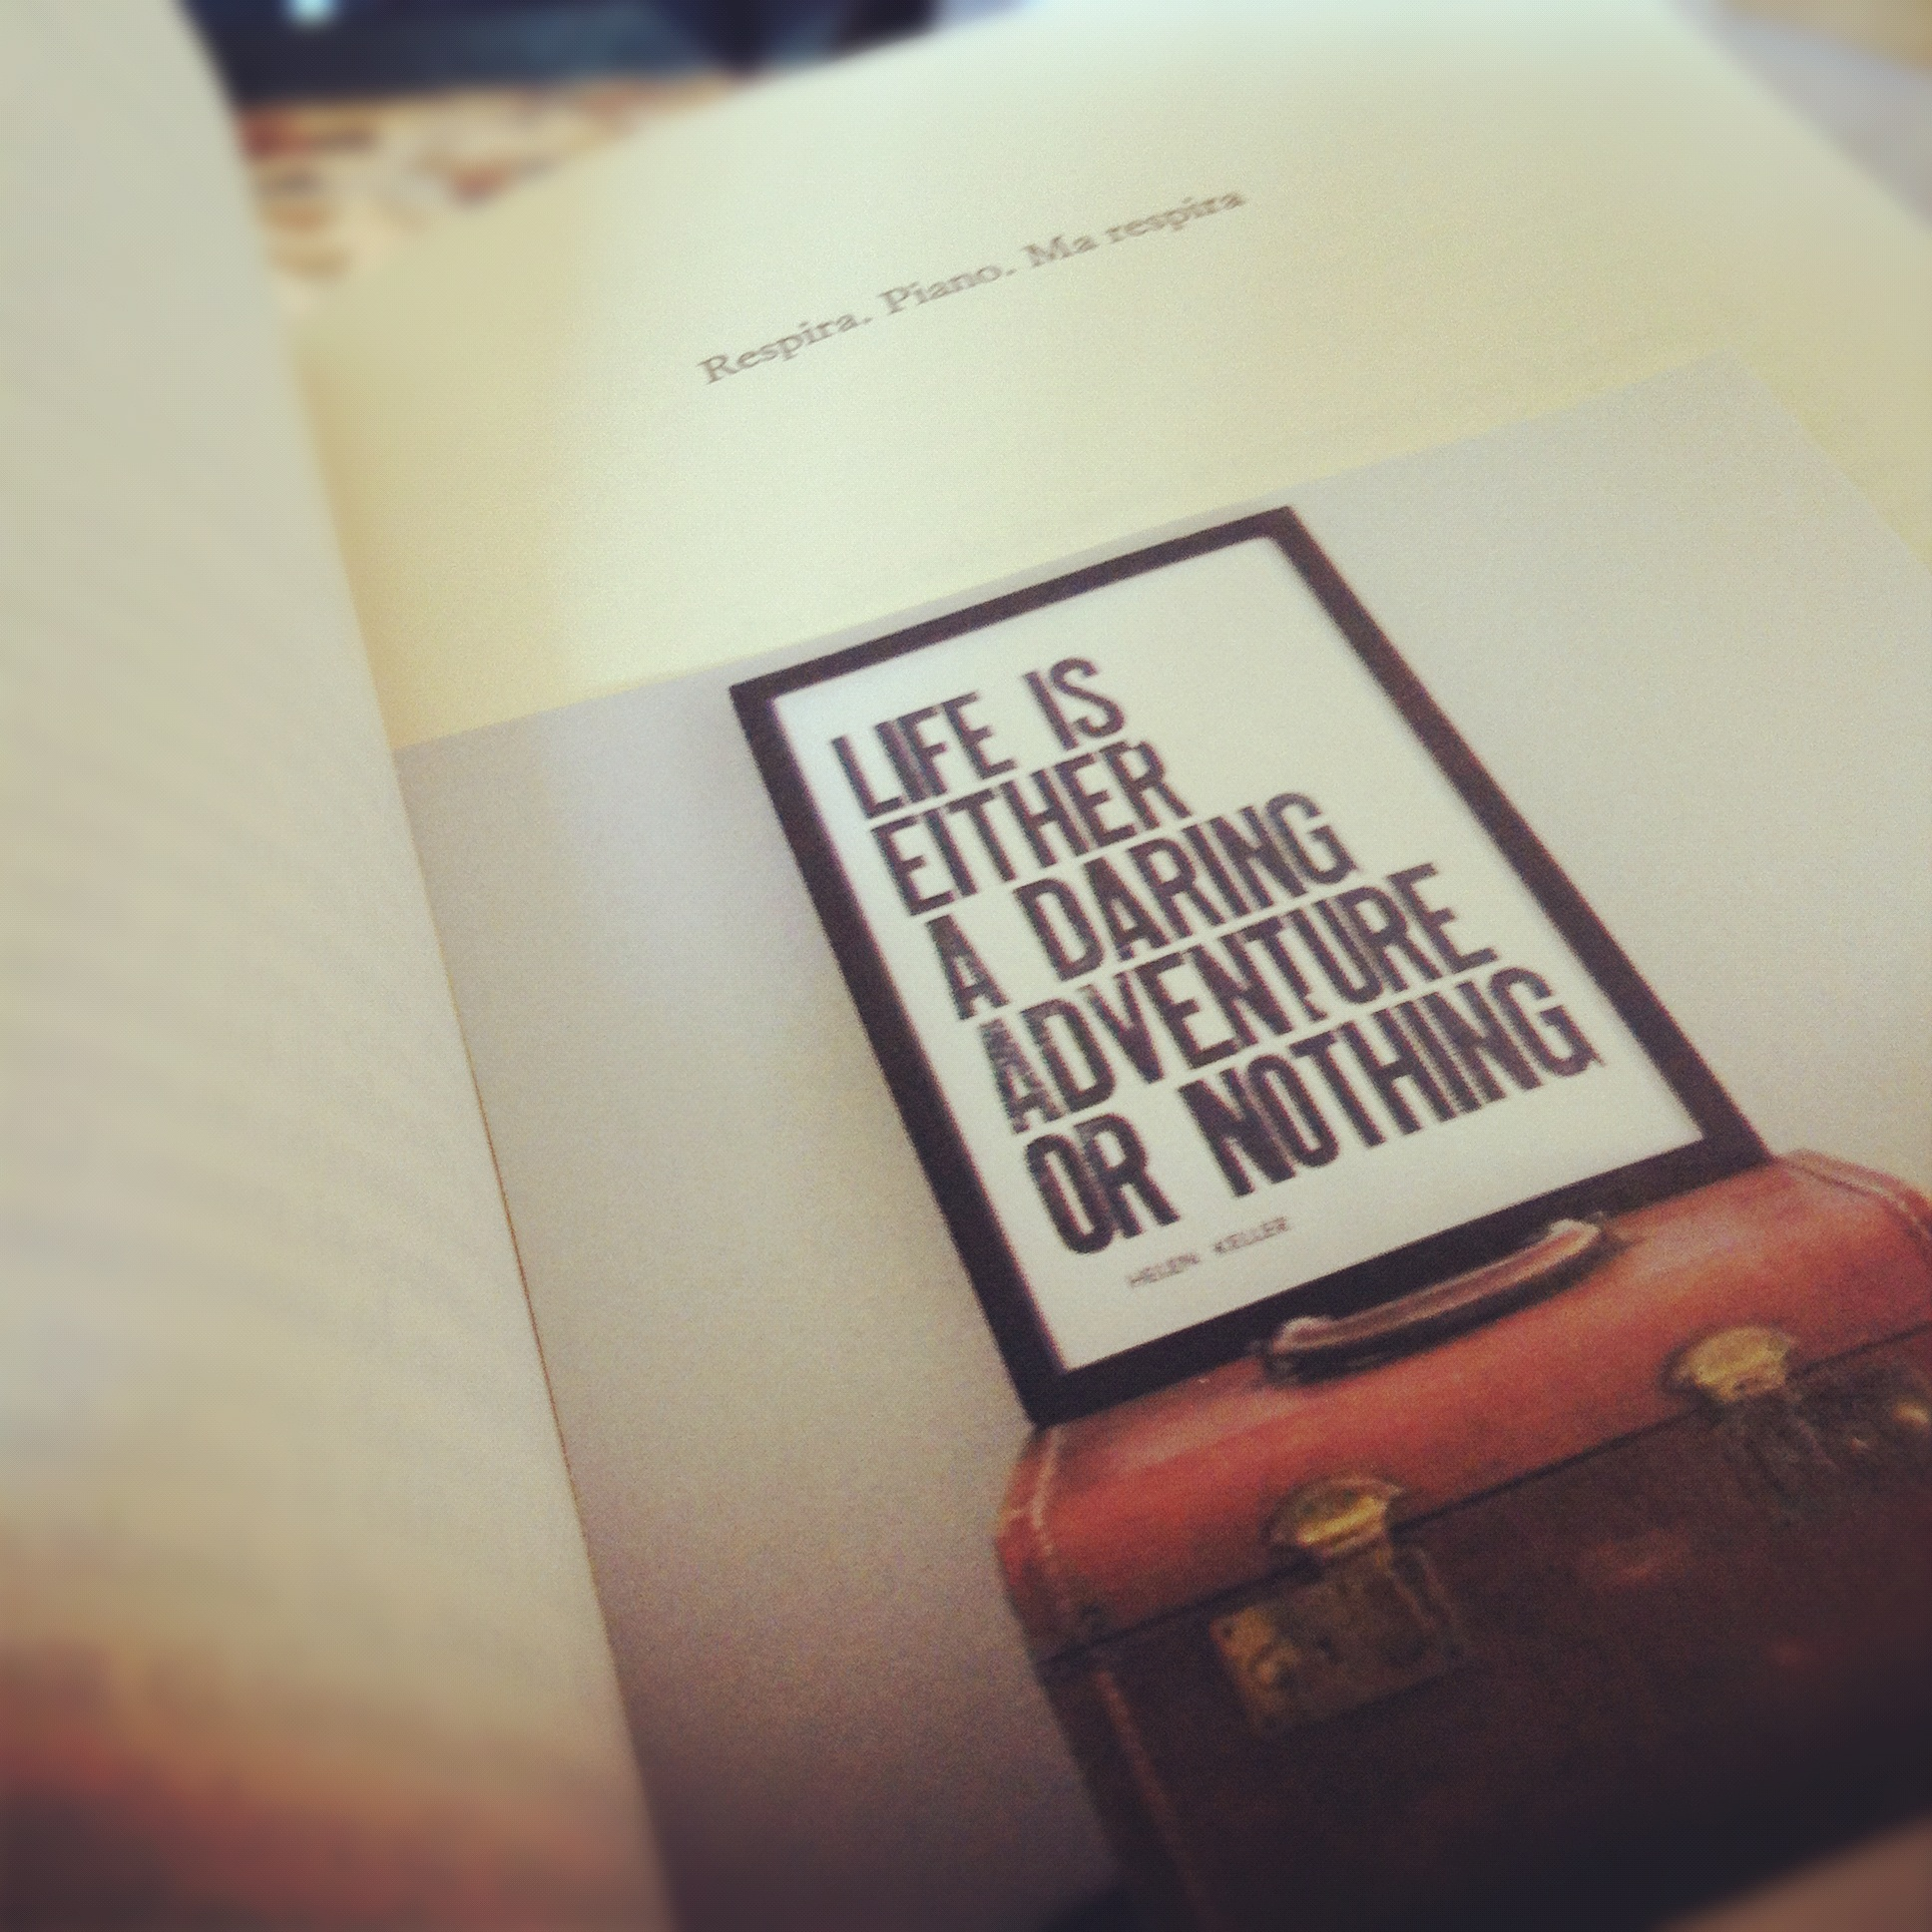 Life is either a daring adventure or nothing - valigia - segnalibro - il momento è delicato niccolò ammaniti